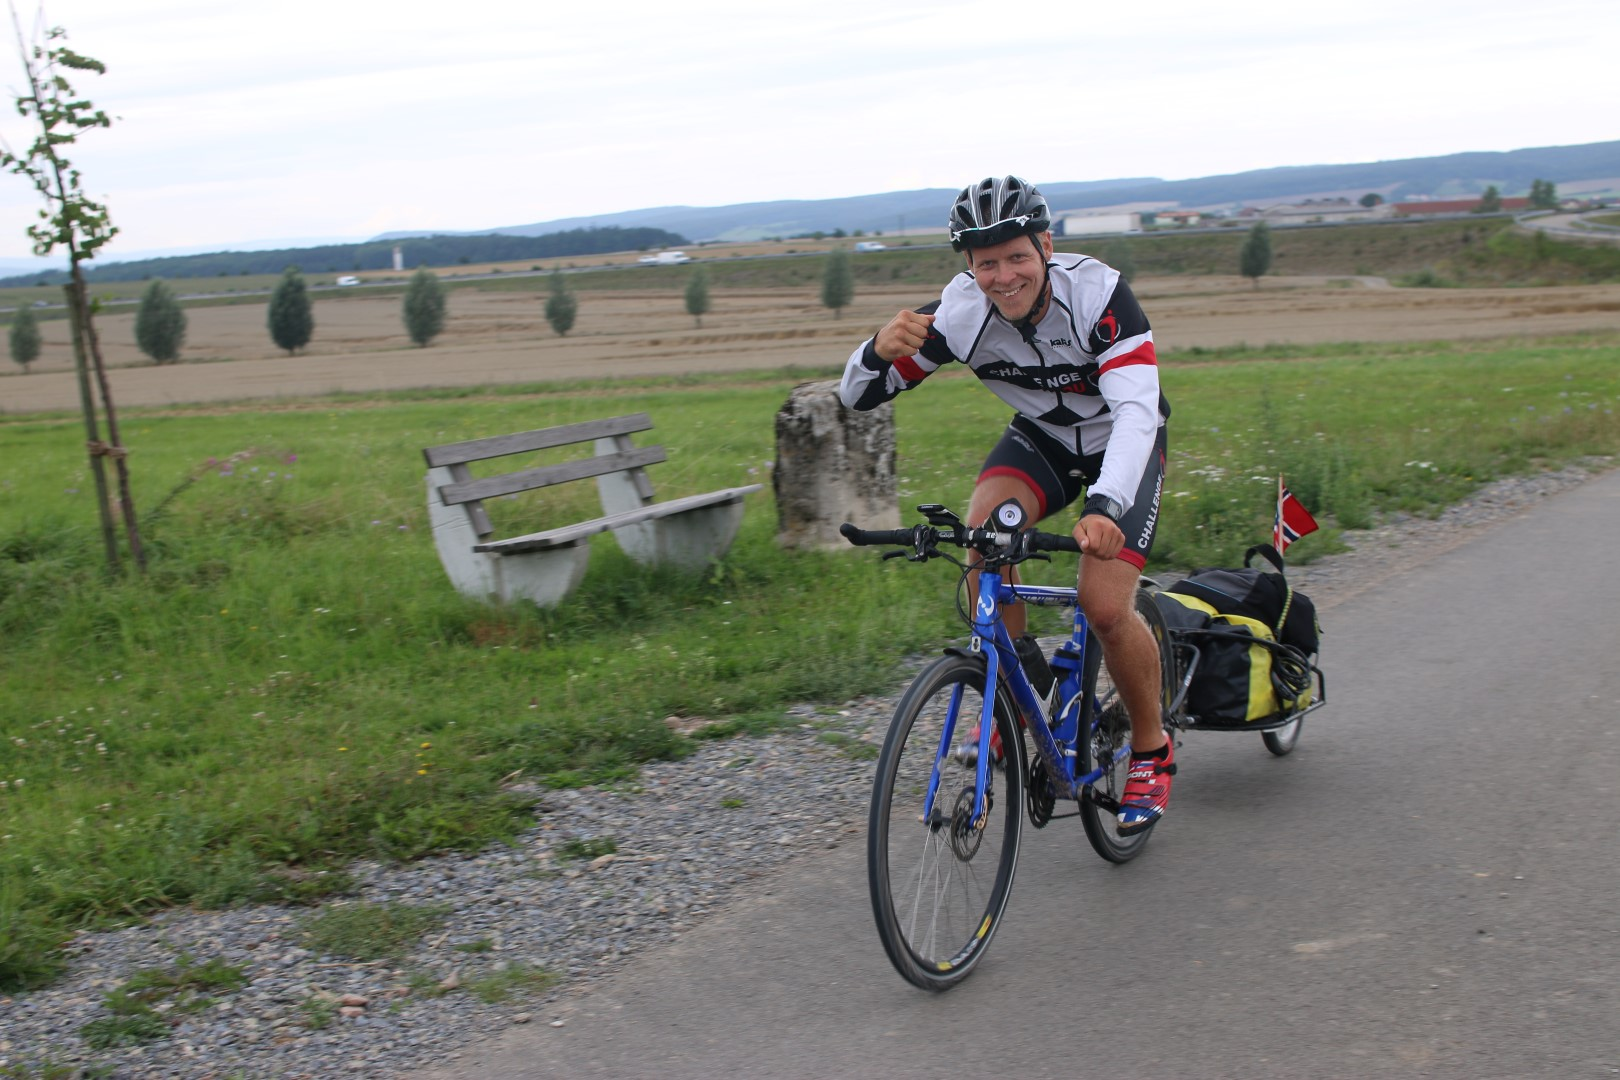 Cycling as far as possible before the rain hits me. The Czech boarder is getting closer every day